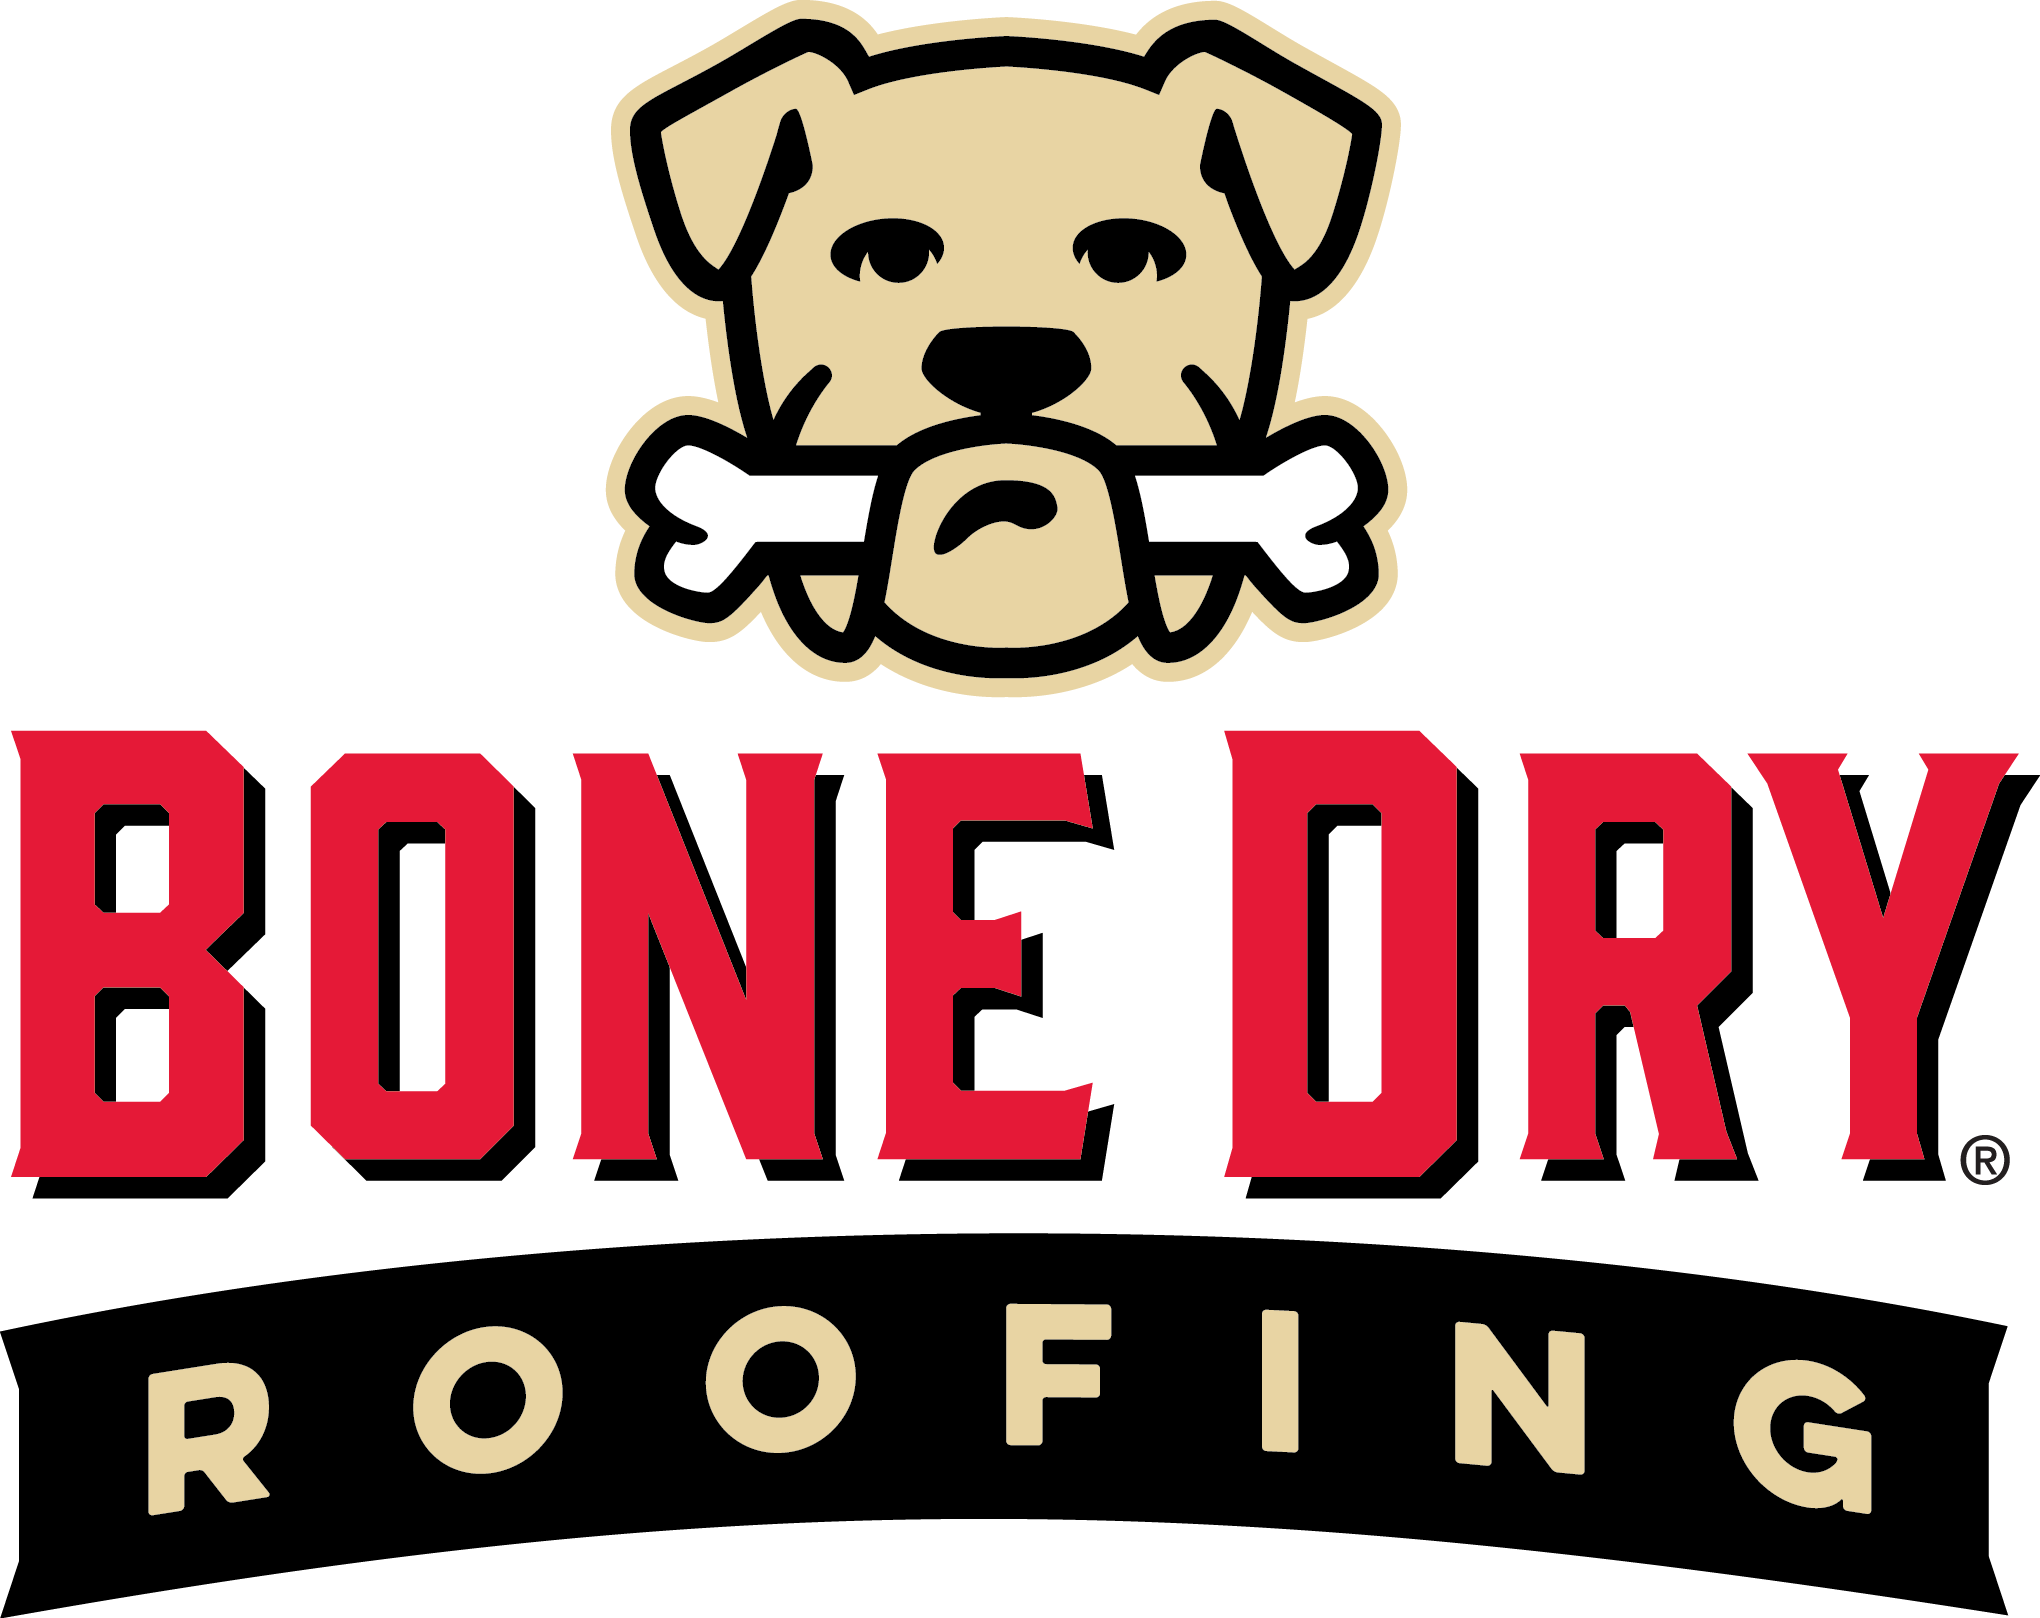 Bone Dry Roofing is a Top-Rated Roofing Company in West Chester, OH